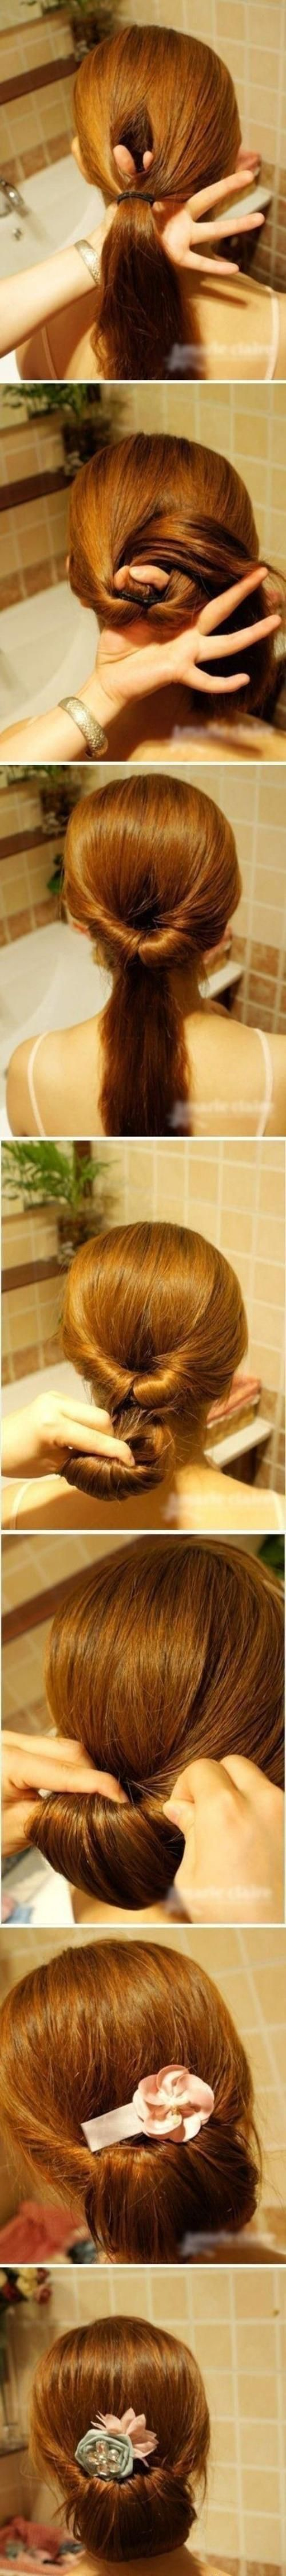 Do it yourself hairstyles 26 photos hair style vintage hair and do it yourself hairstyles 26 photos solutioingenieria Gallery